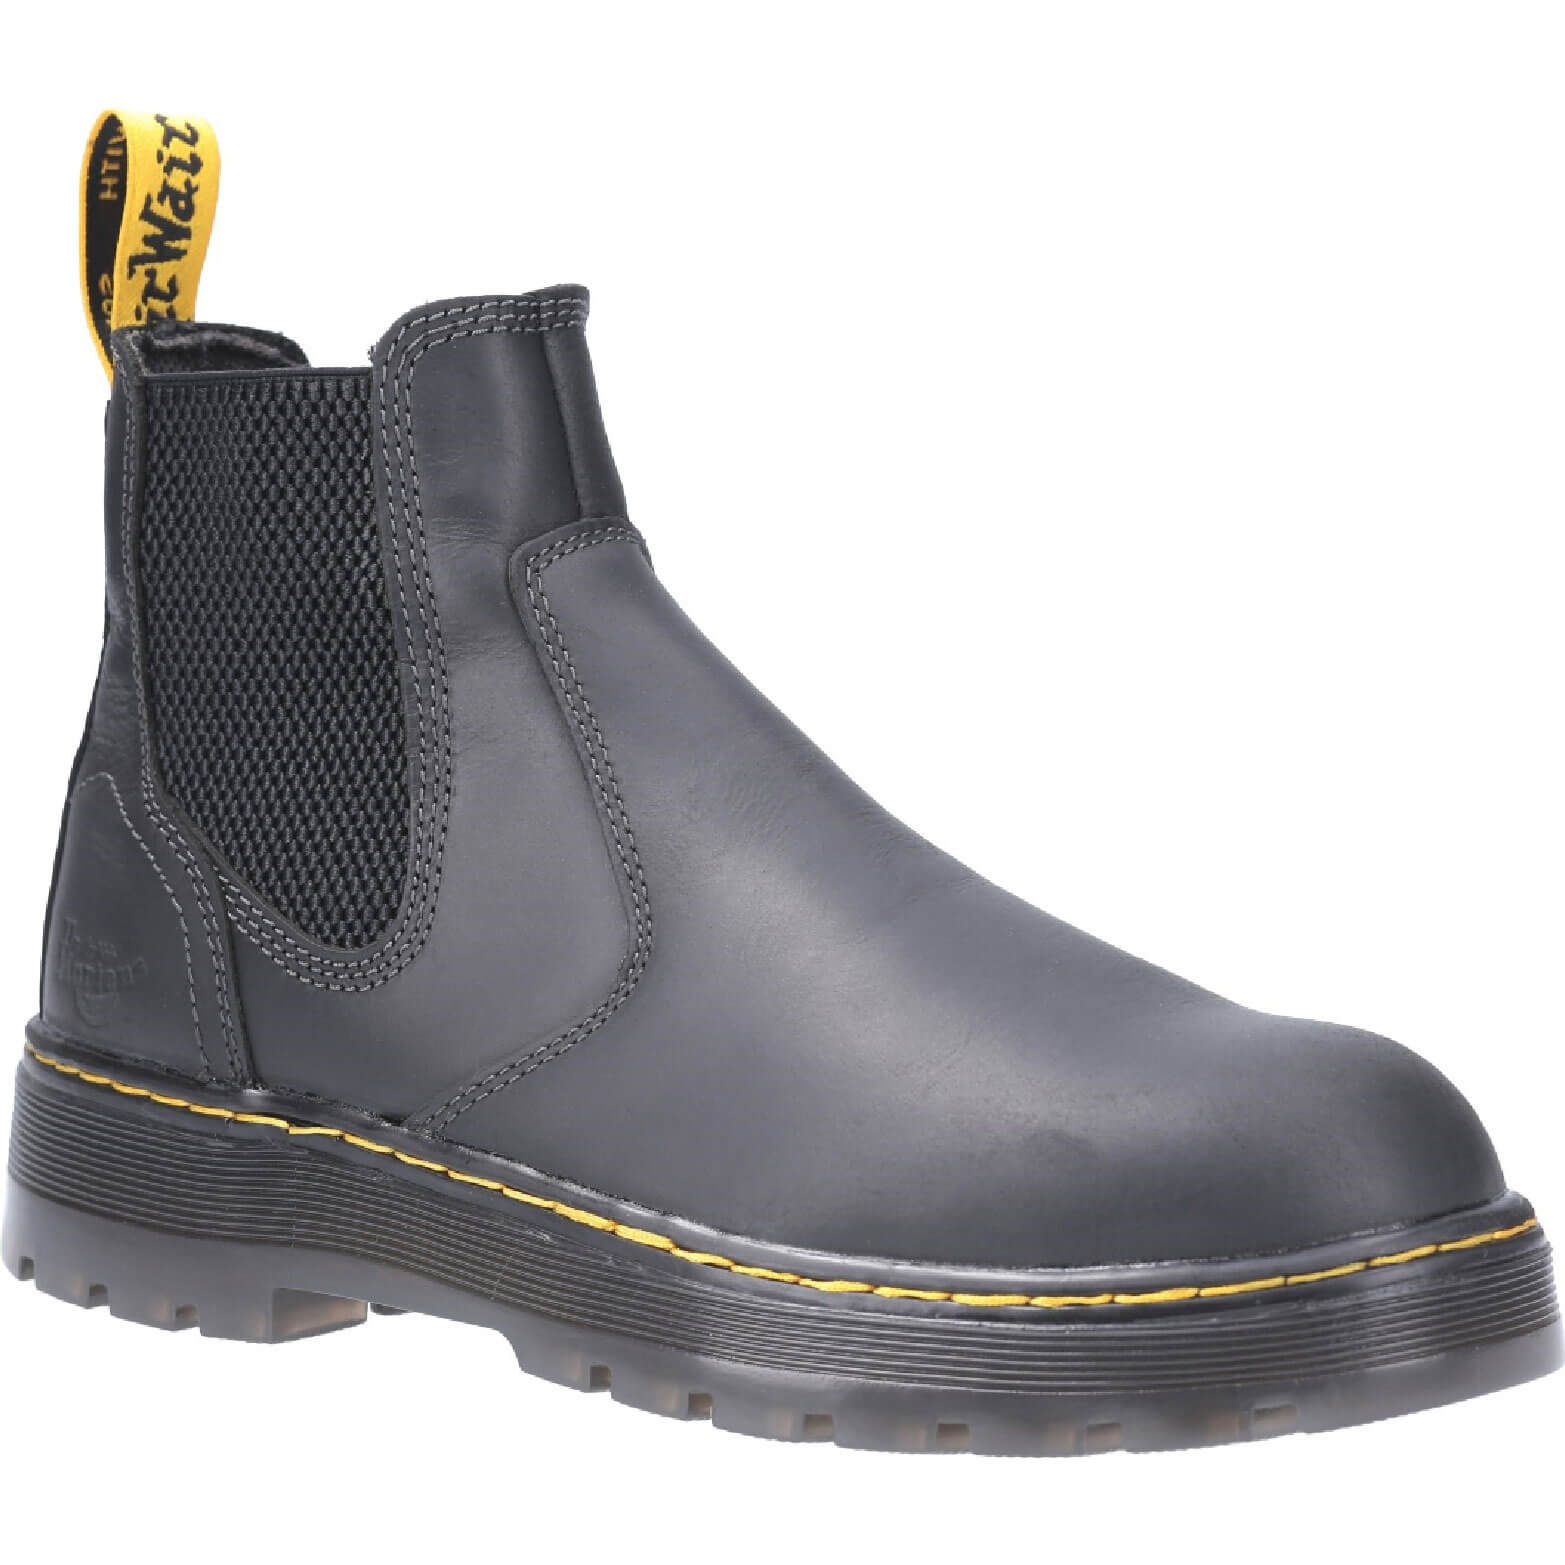 Image of Dr Martens Eaves Elasticated Safety Boot Black Size 10